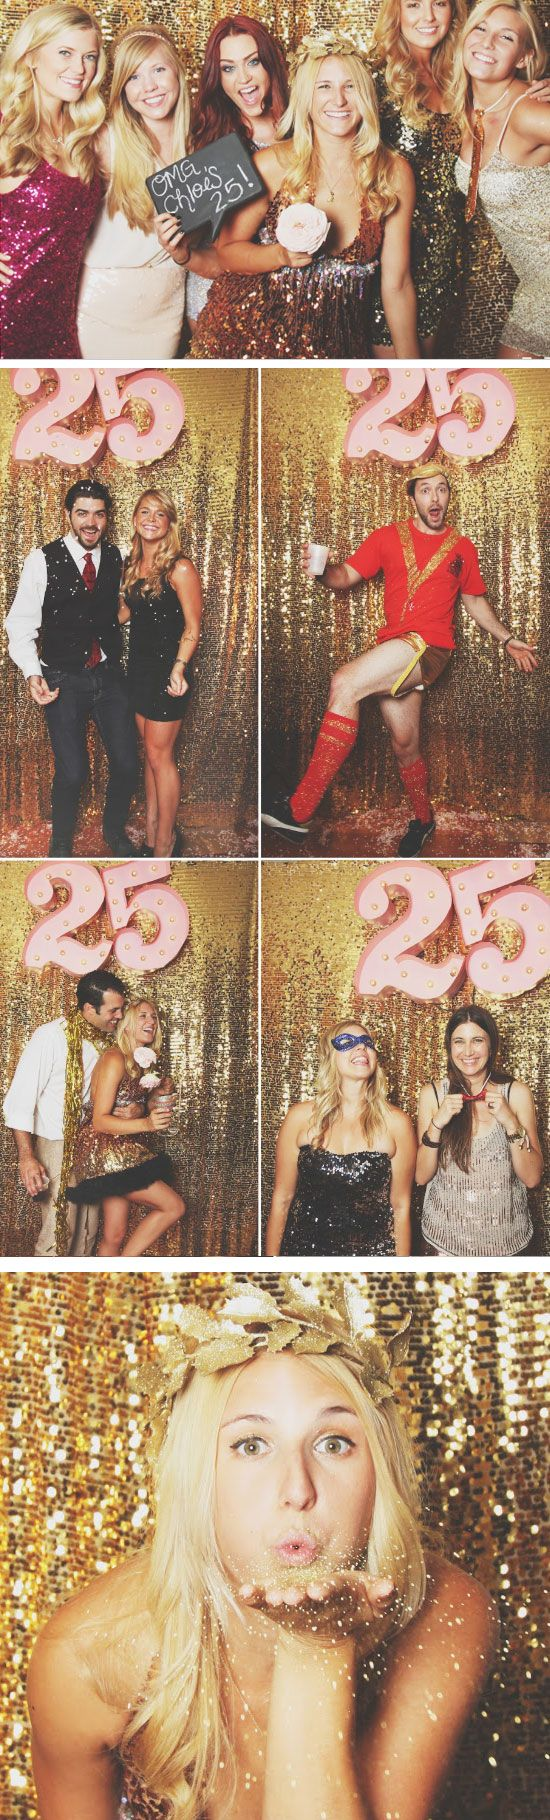 Glitter Photobooth | Awesome Sweet 16 Party Ideas for Girls